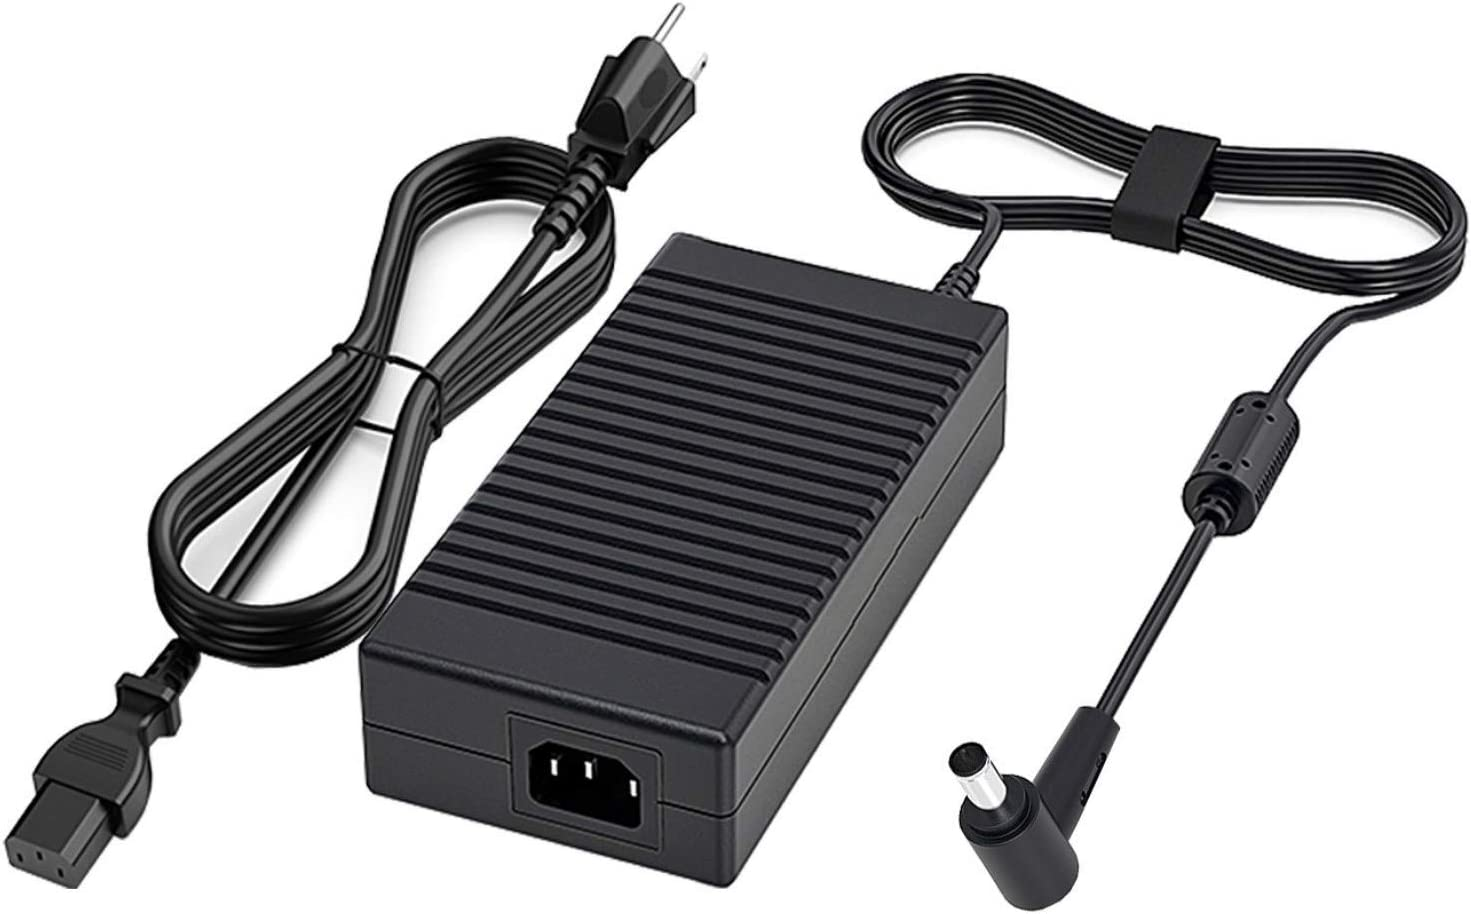 180W 19V 9.5A AC-Adapter-Charger ADP-180HB D for MSI GS73VR, GE62VR, GS63VR, GS43VR, GE60, GE62, GE70, GE72, GS60, GS63, GS65, GS70, GS75, GT60, GT70, GP62, GP62X, Laptop Power-Supply Cord 180W